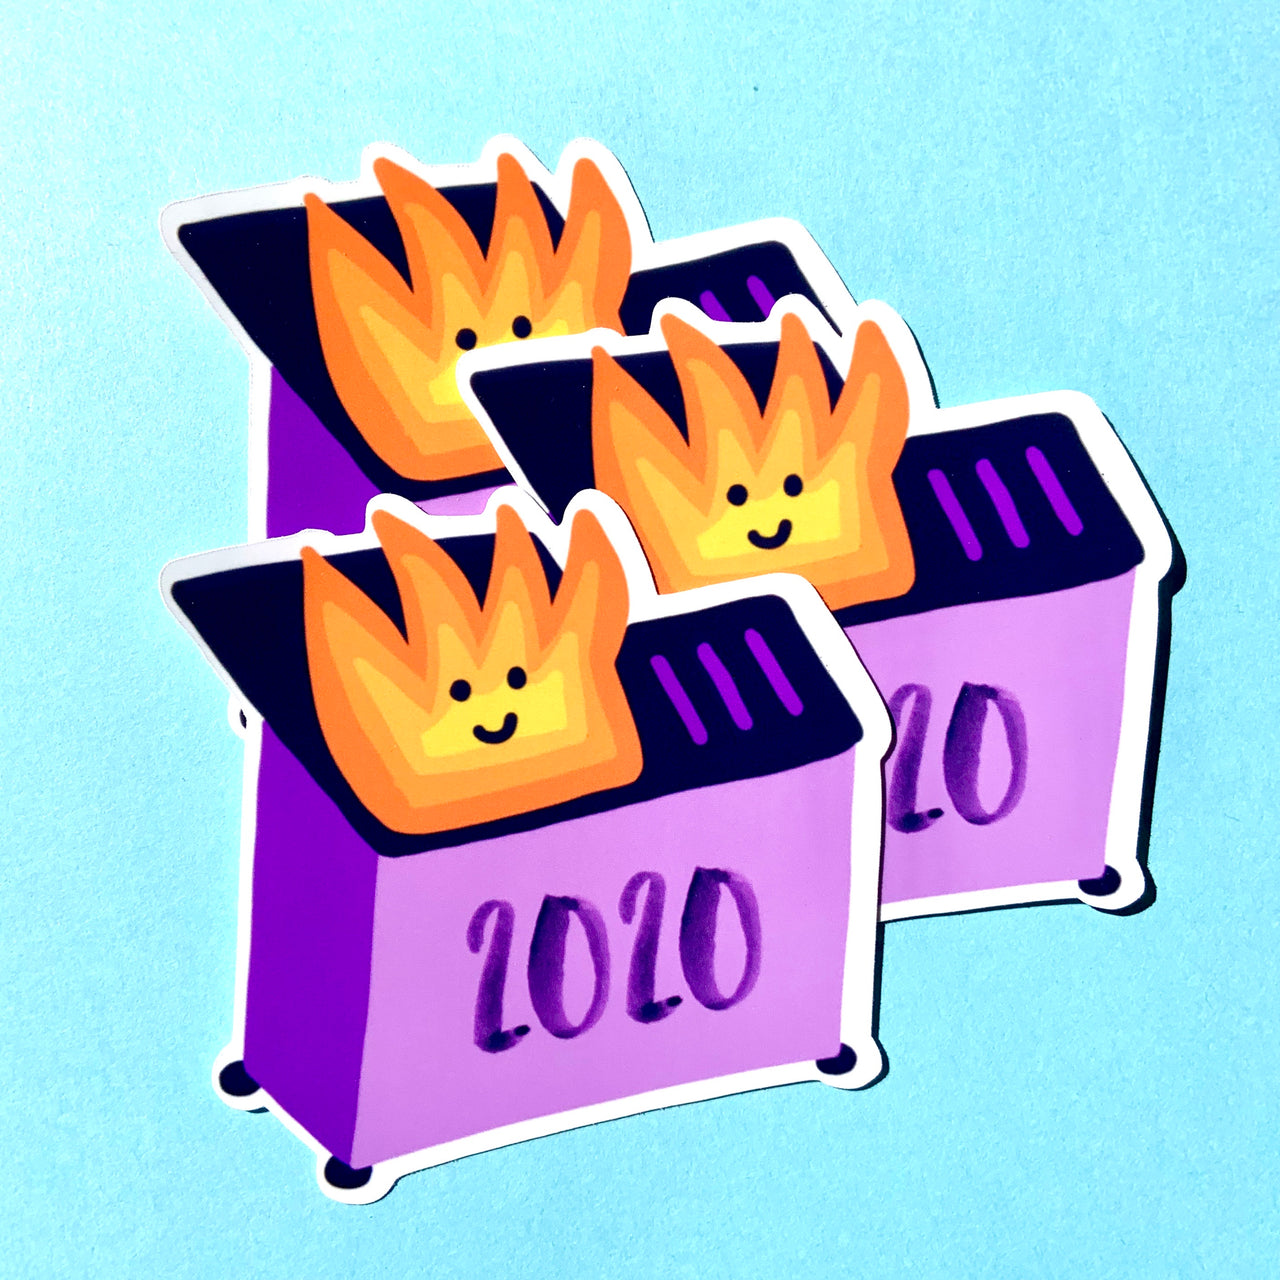 Dumpster fire 2020 stickers (pack of 3!)